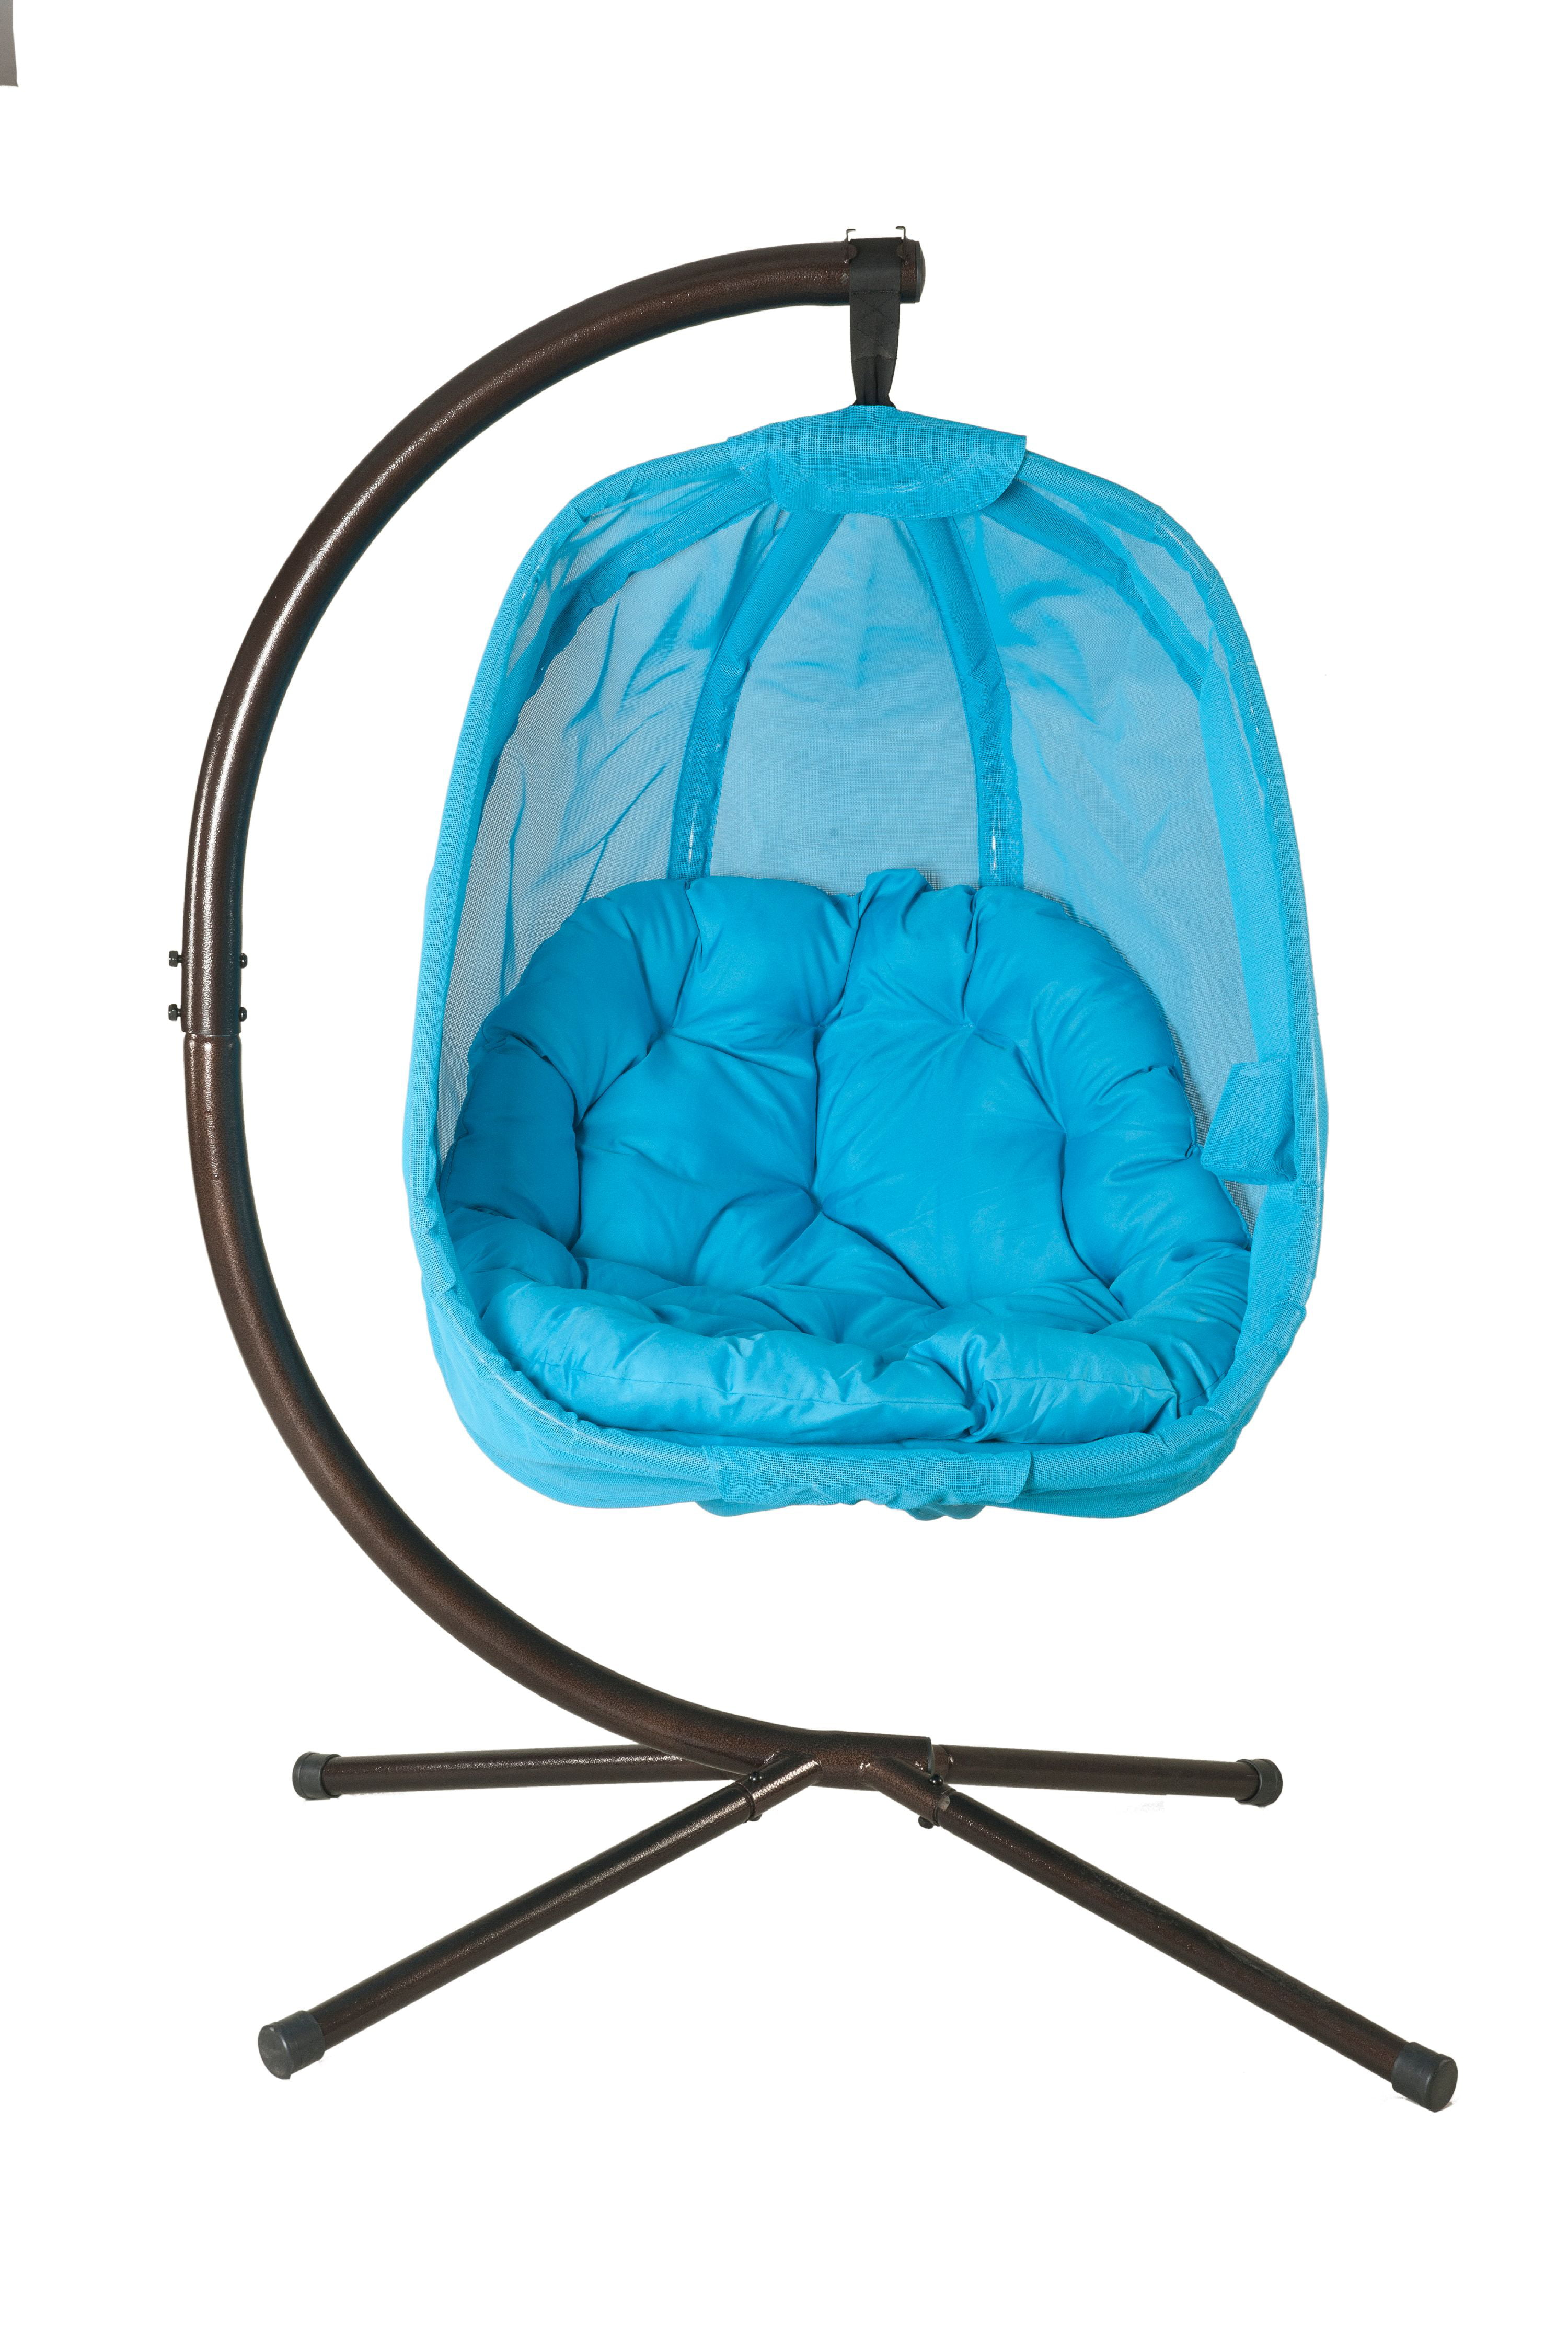 Flowerhouse Hanging Egg Chair W/Stand - Walmart.com ...